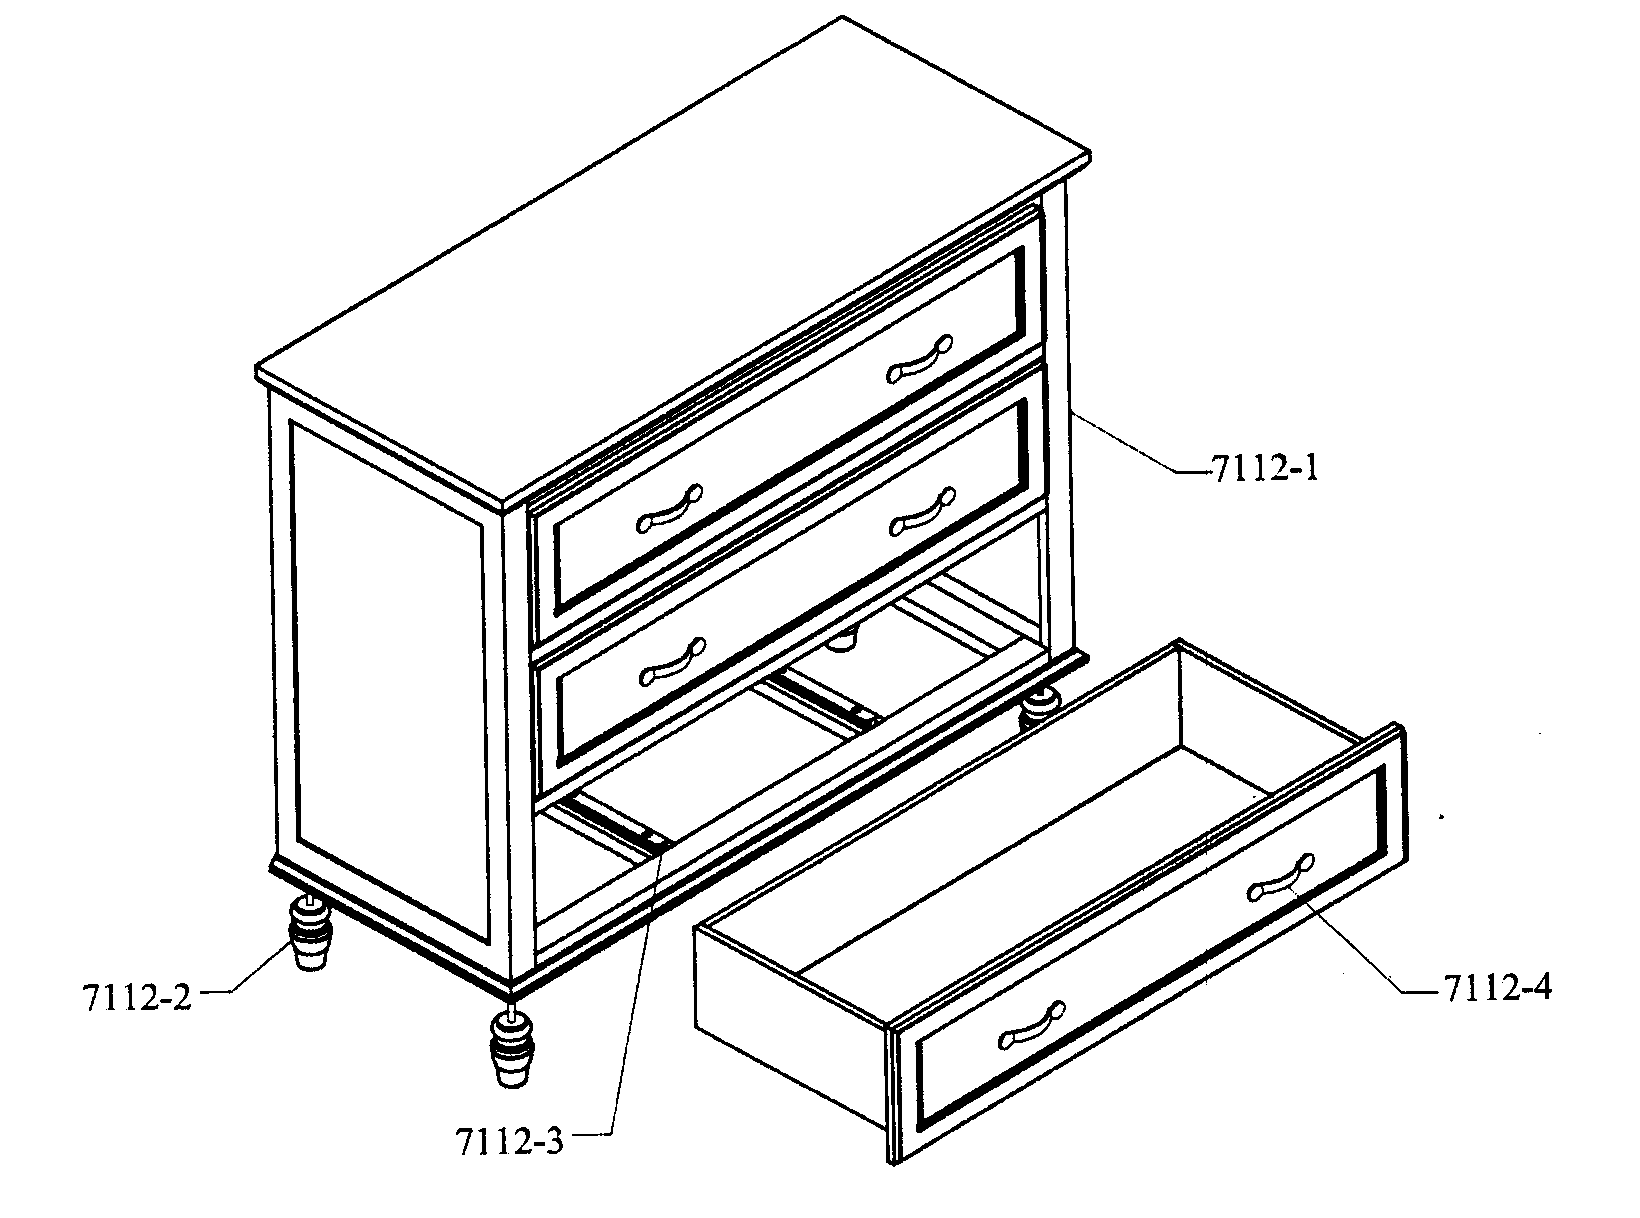 Lands-End model 7112 furniture genuine parts